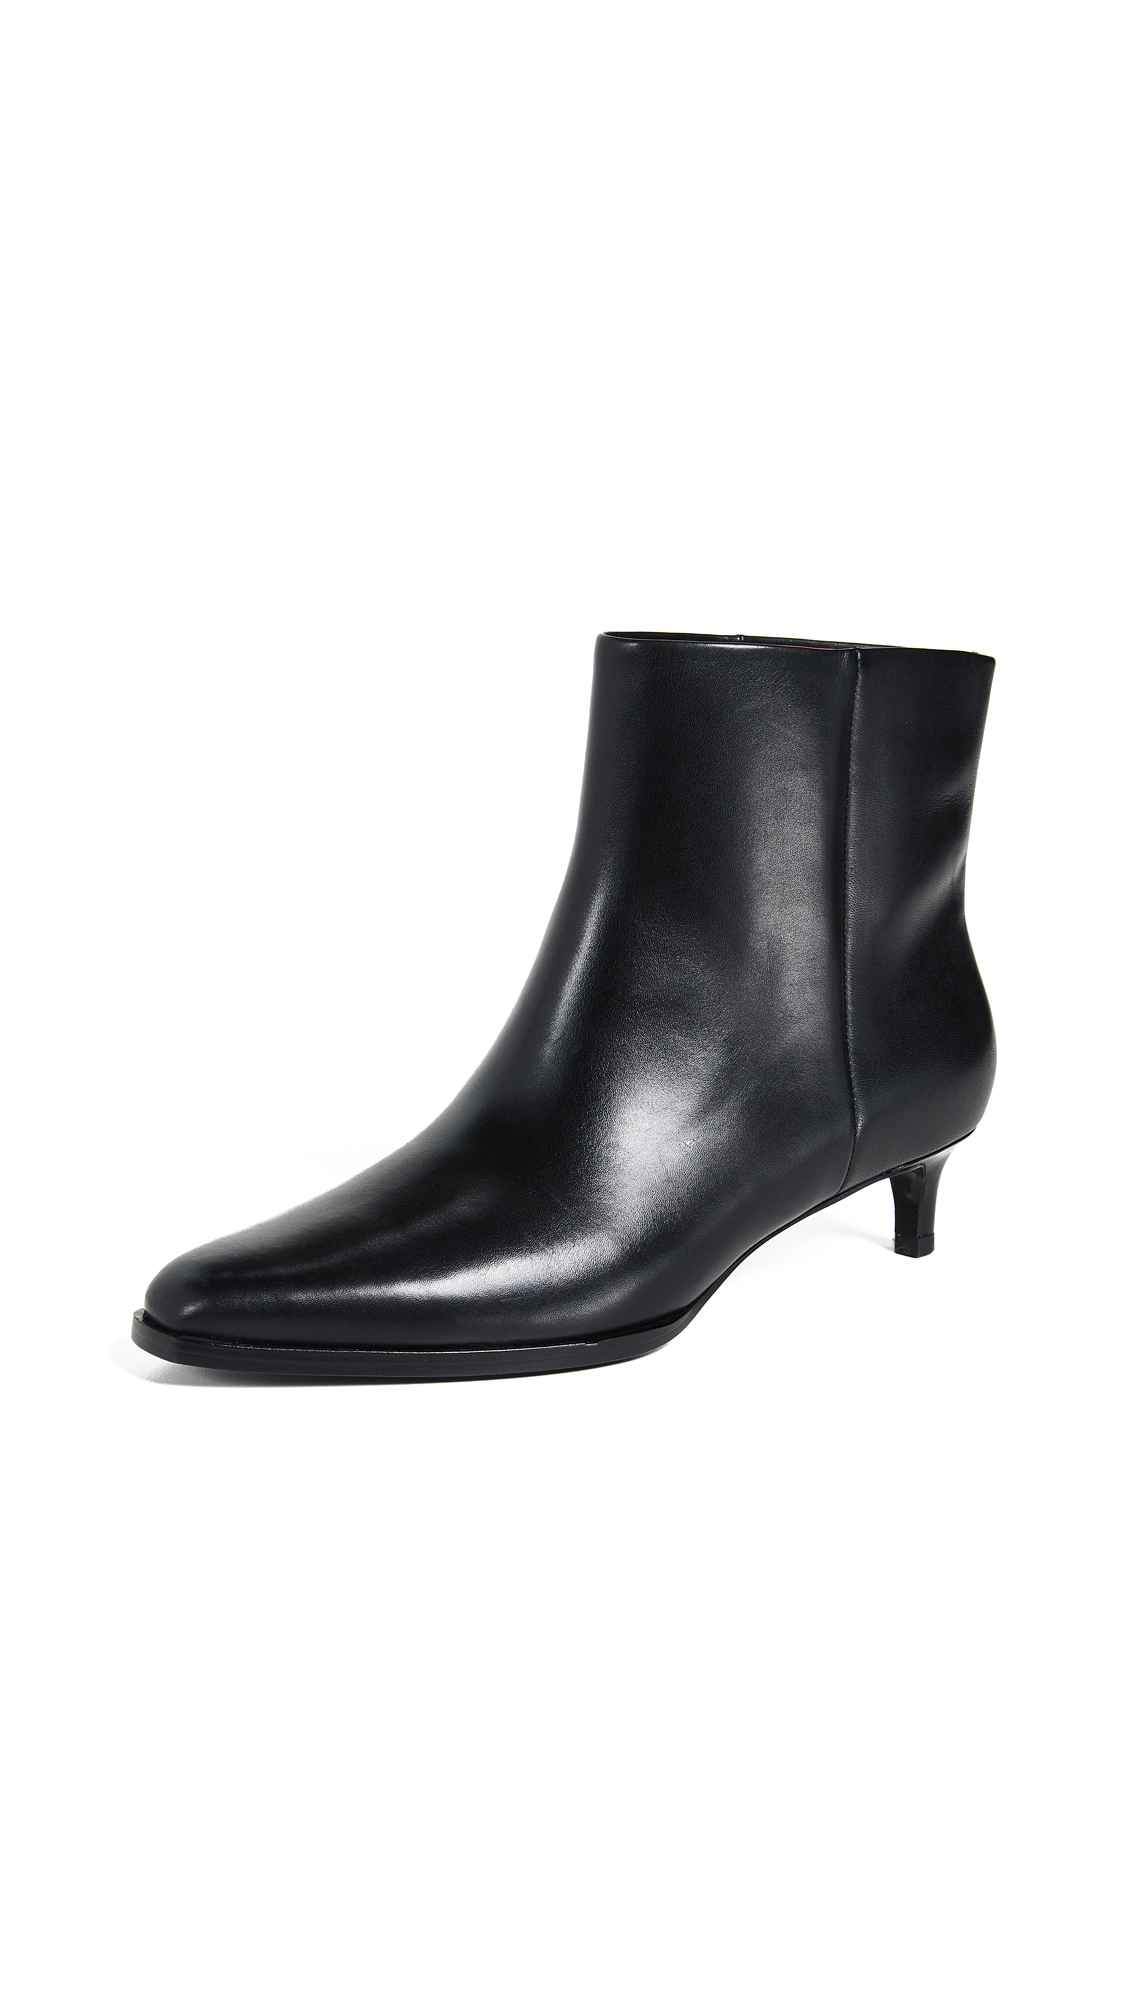 3.1 Phillip Lim Agatha Ankle Booties - Black